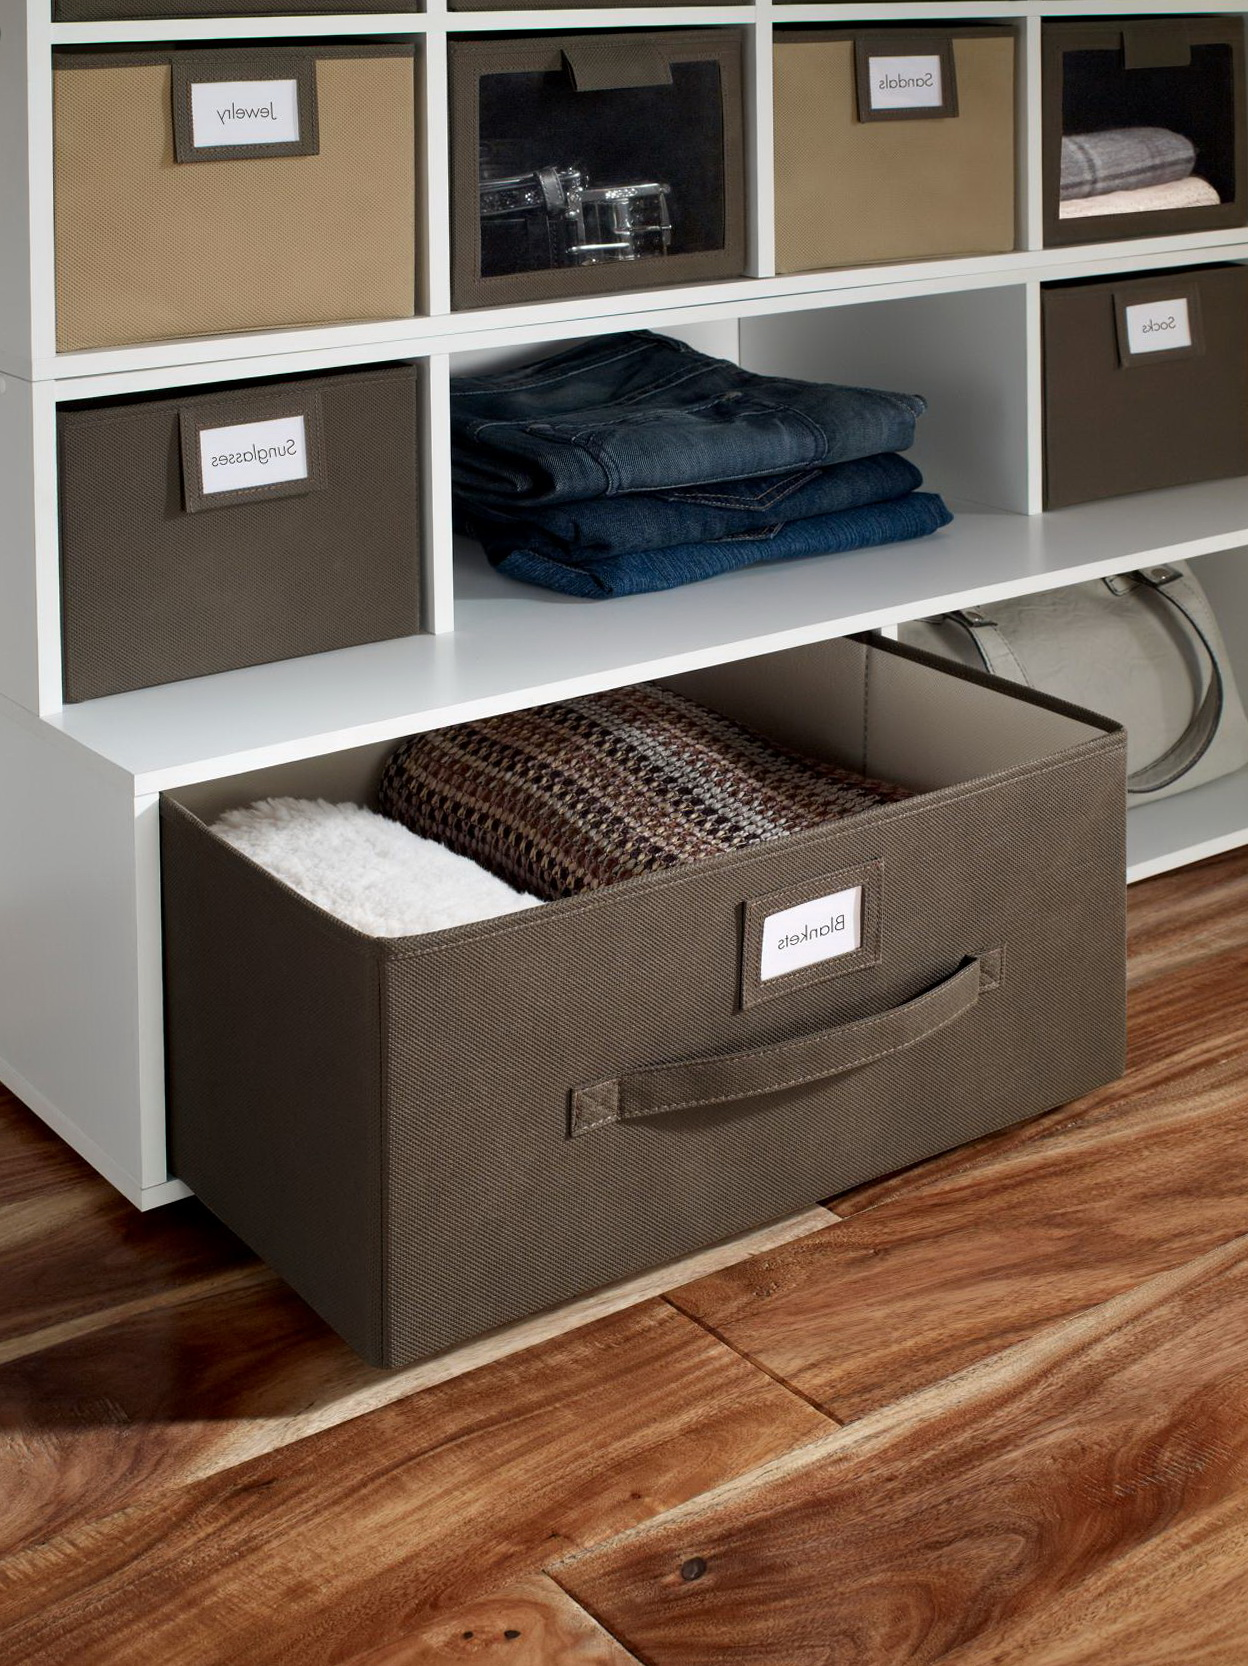 Closetmaid Drawer System